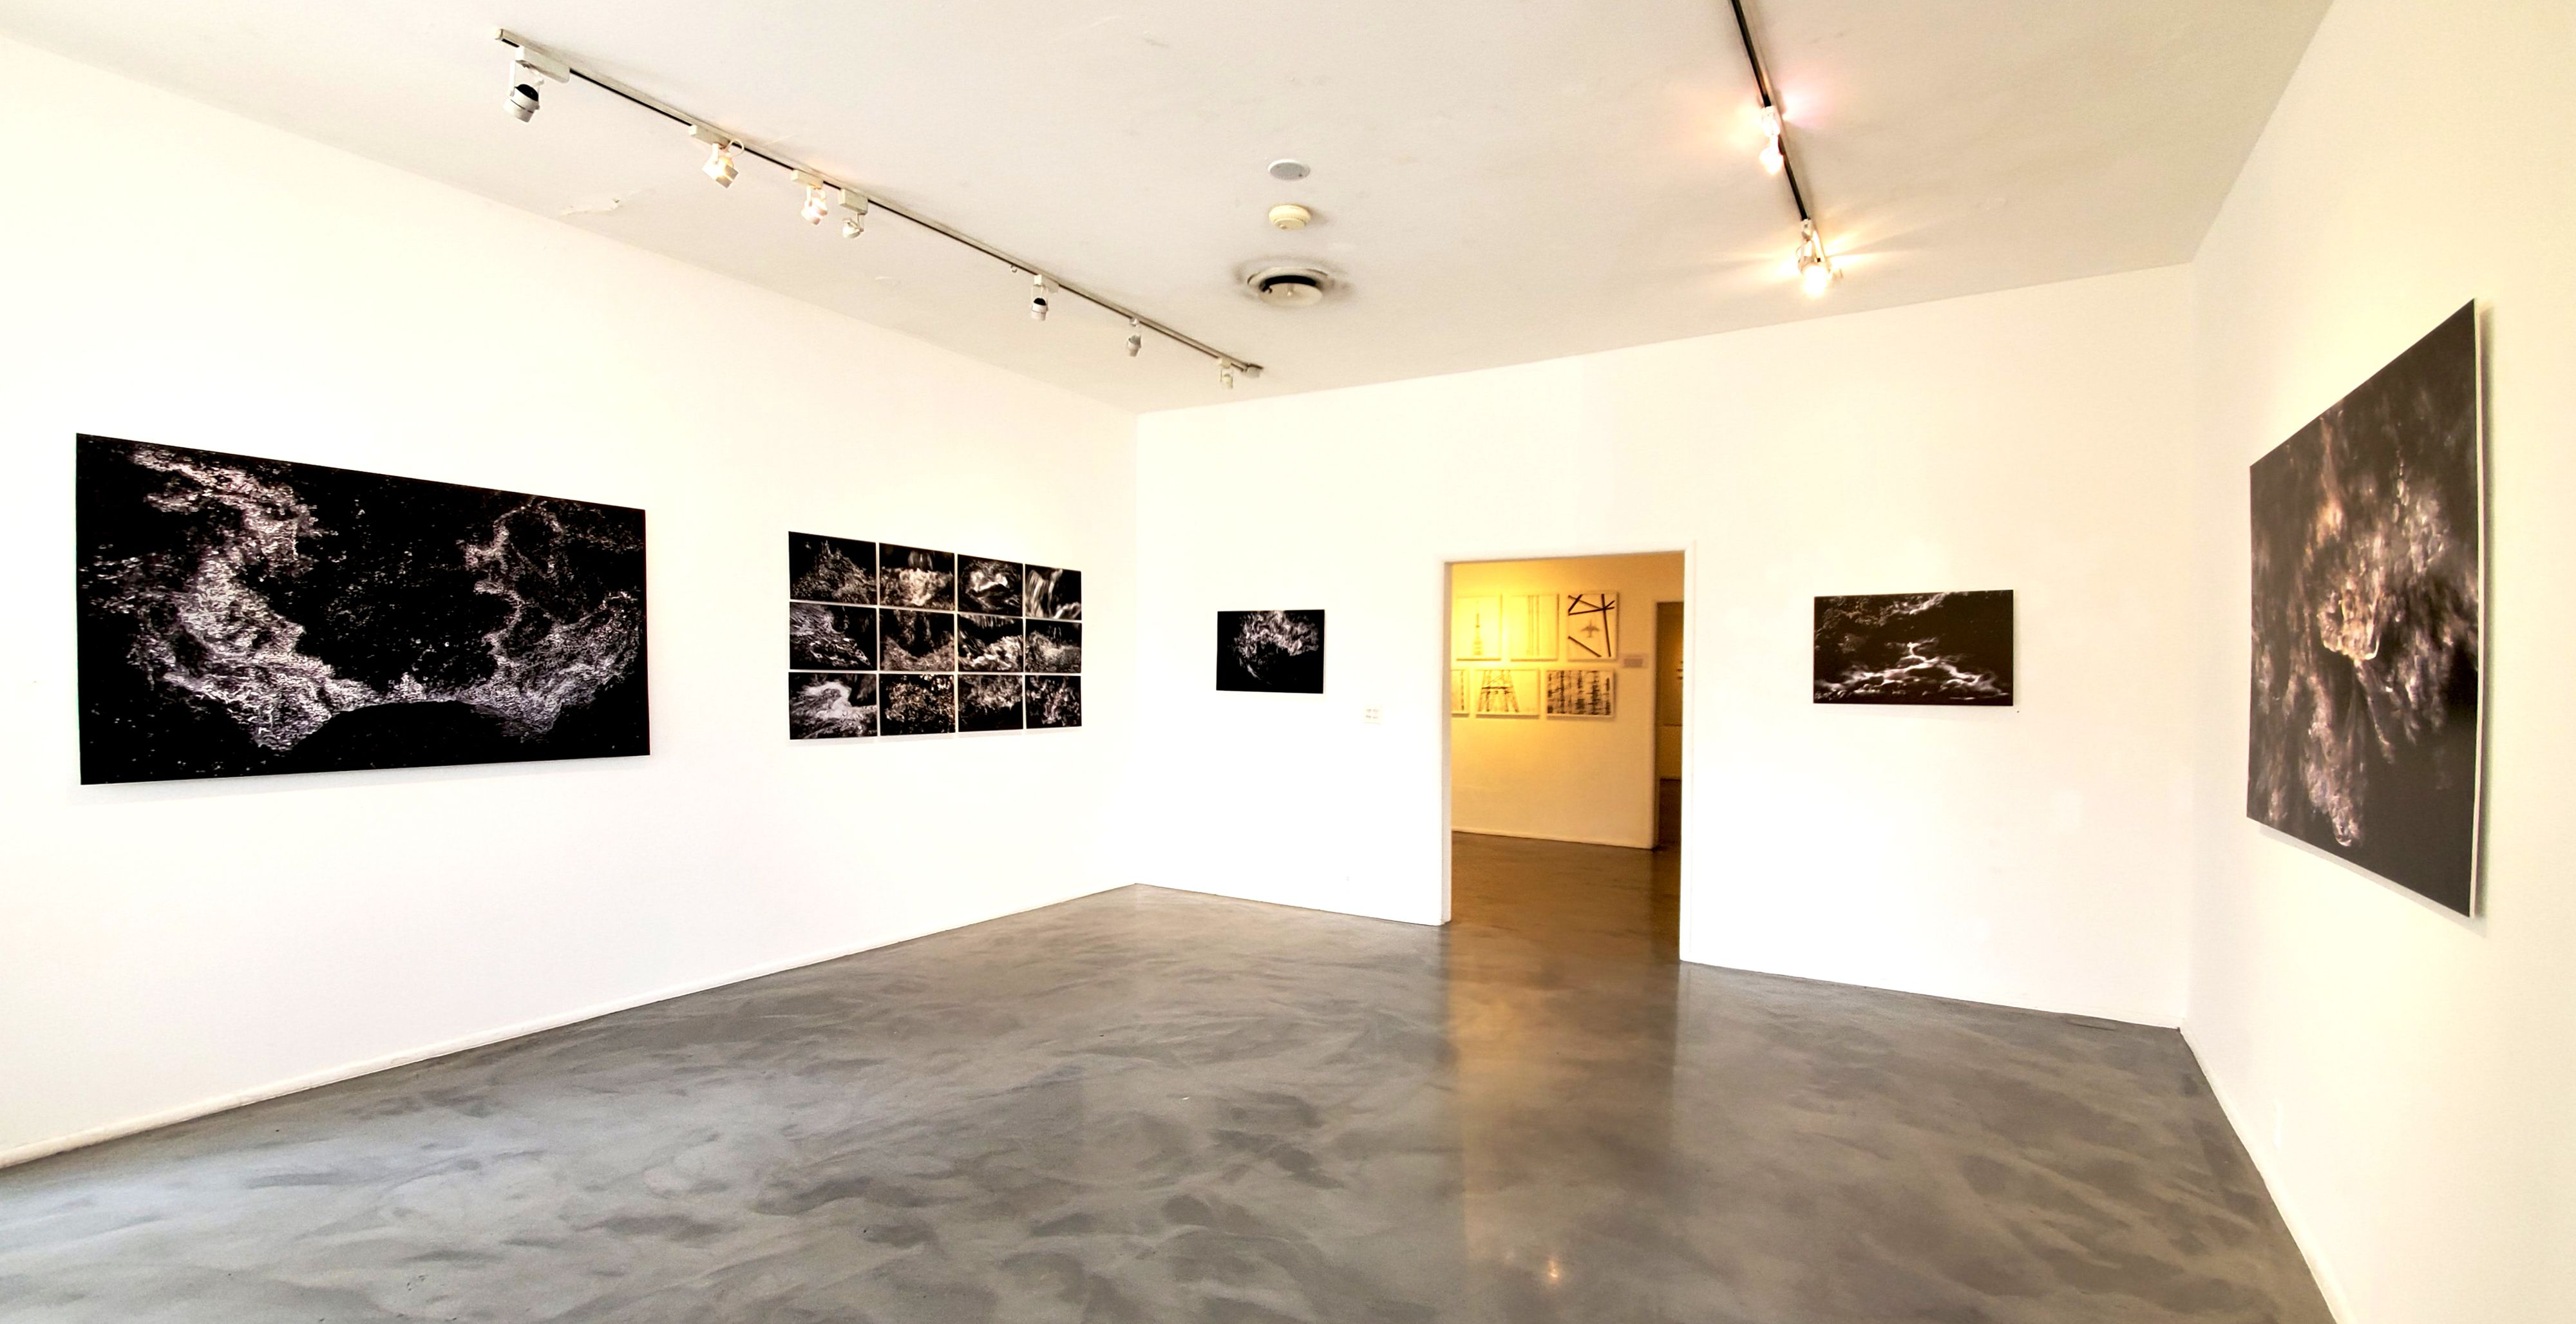 Light Stream - Solo Show at Gallery 825, Los Angeles (installation photo by Kristine Schomaker)